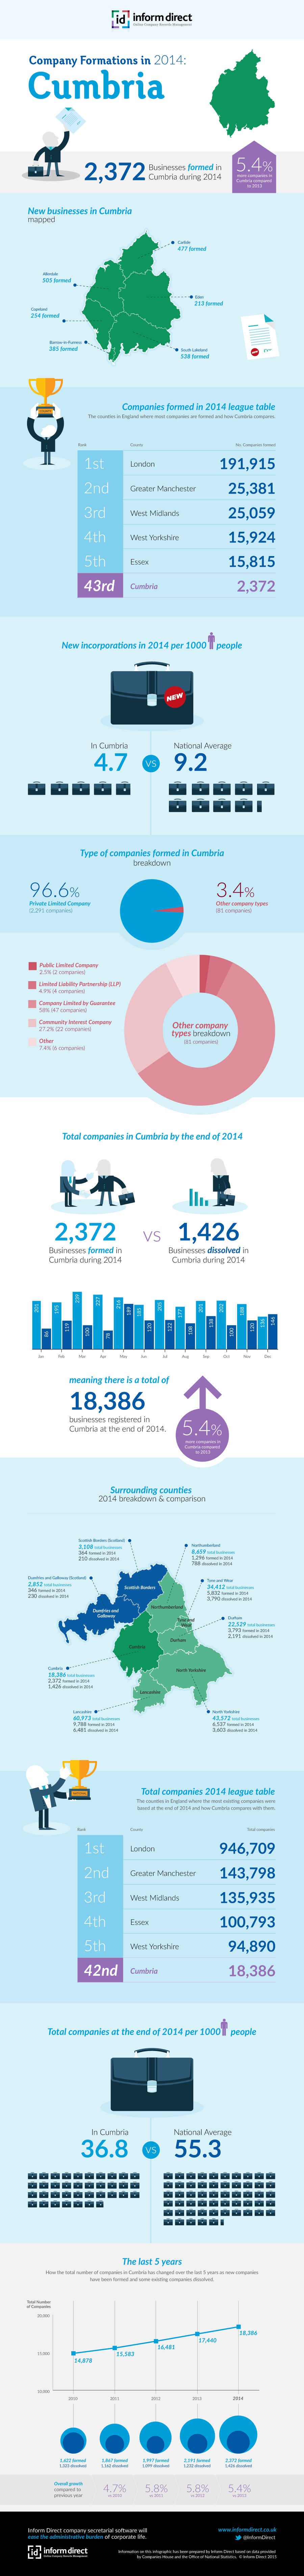 Inform Direct - Company Formations in Cumbria 2014 Infographic